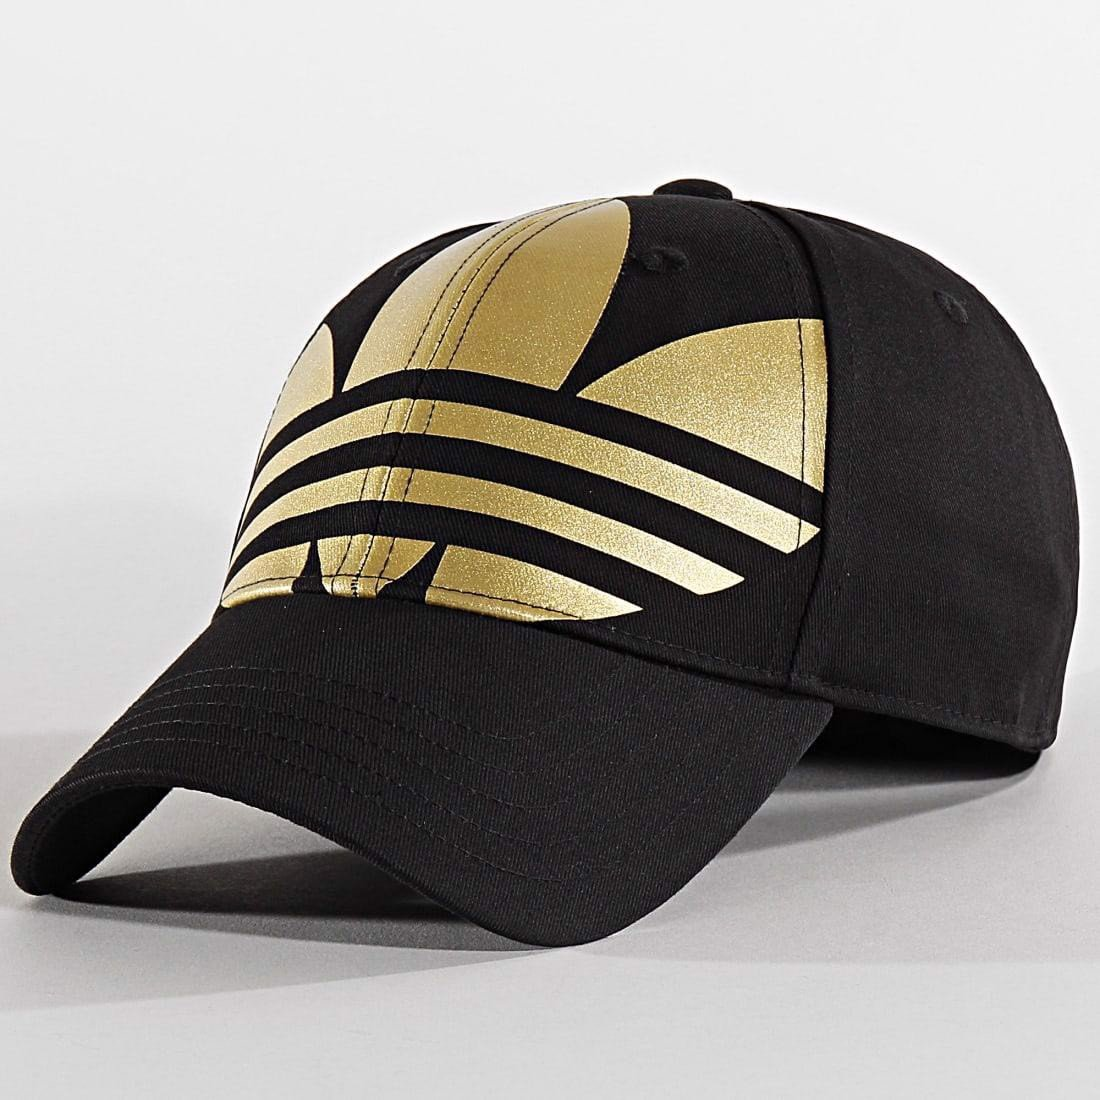 Adidas Caps Big Logo Gold